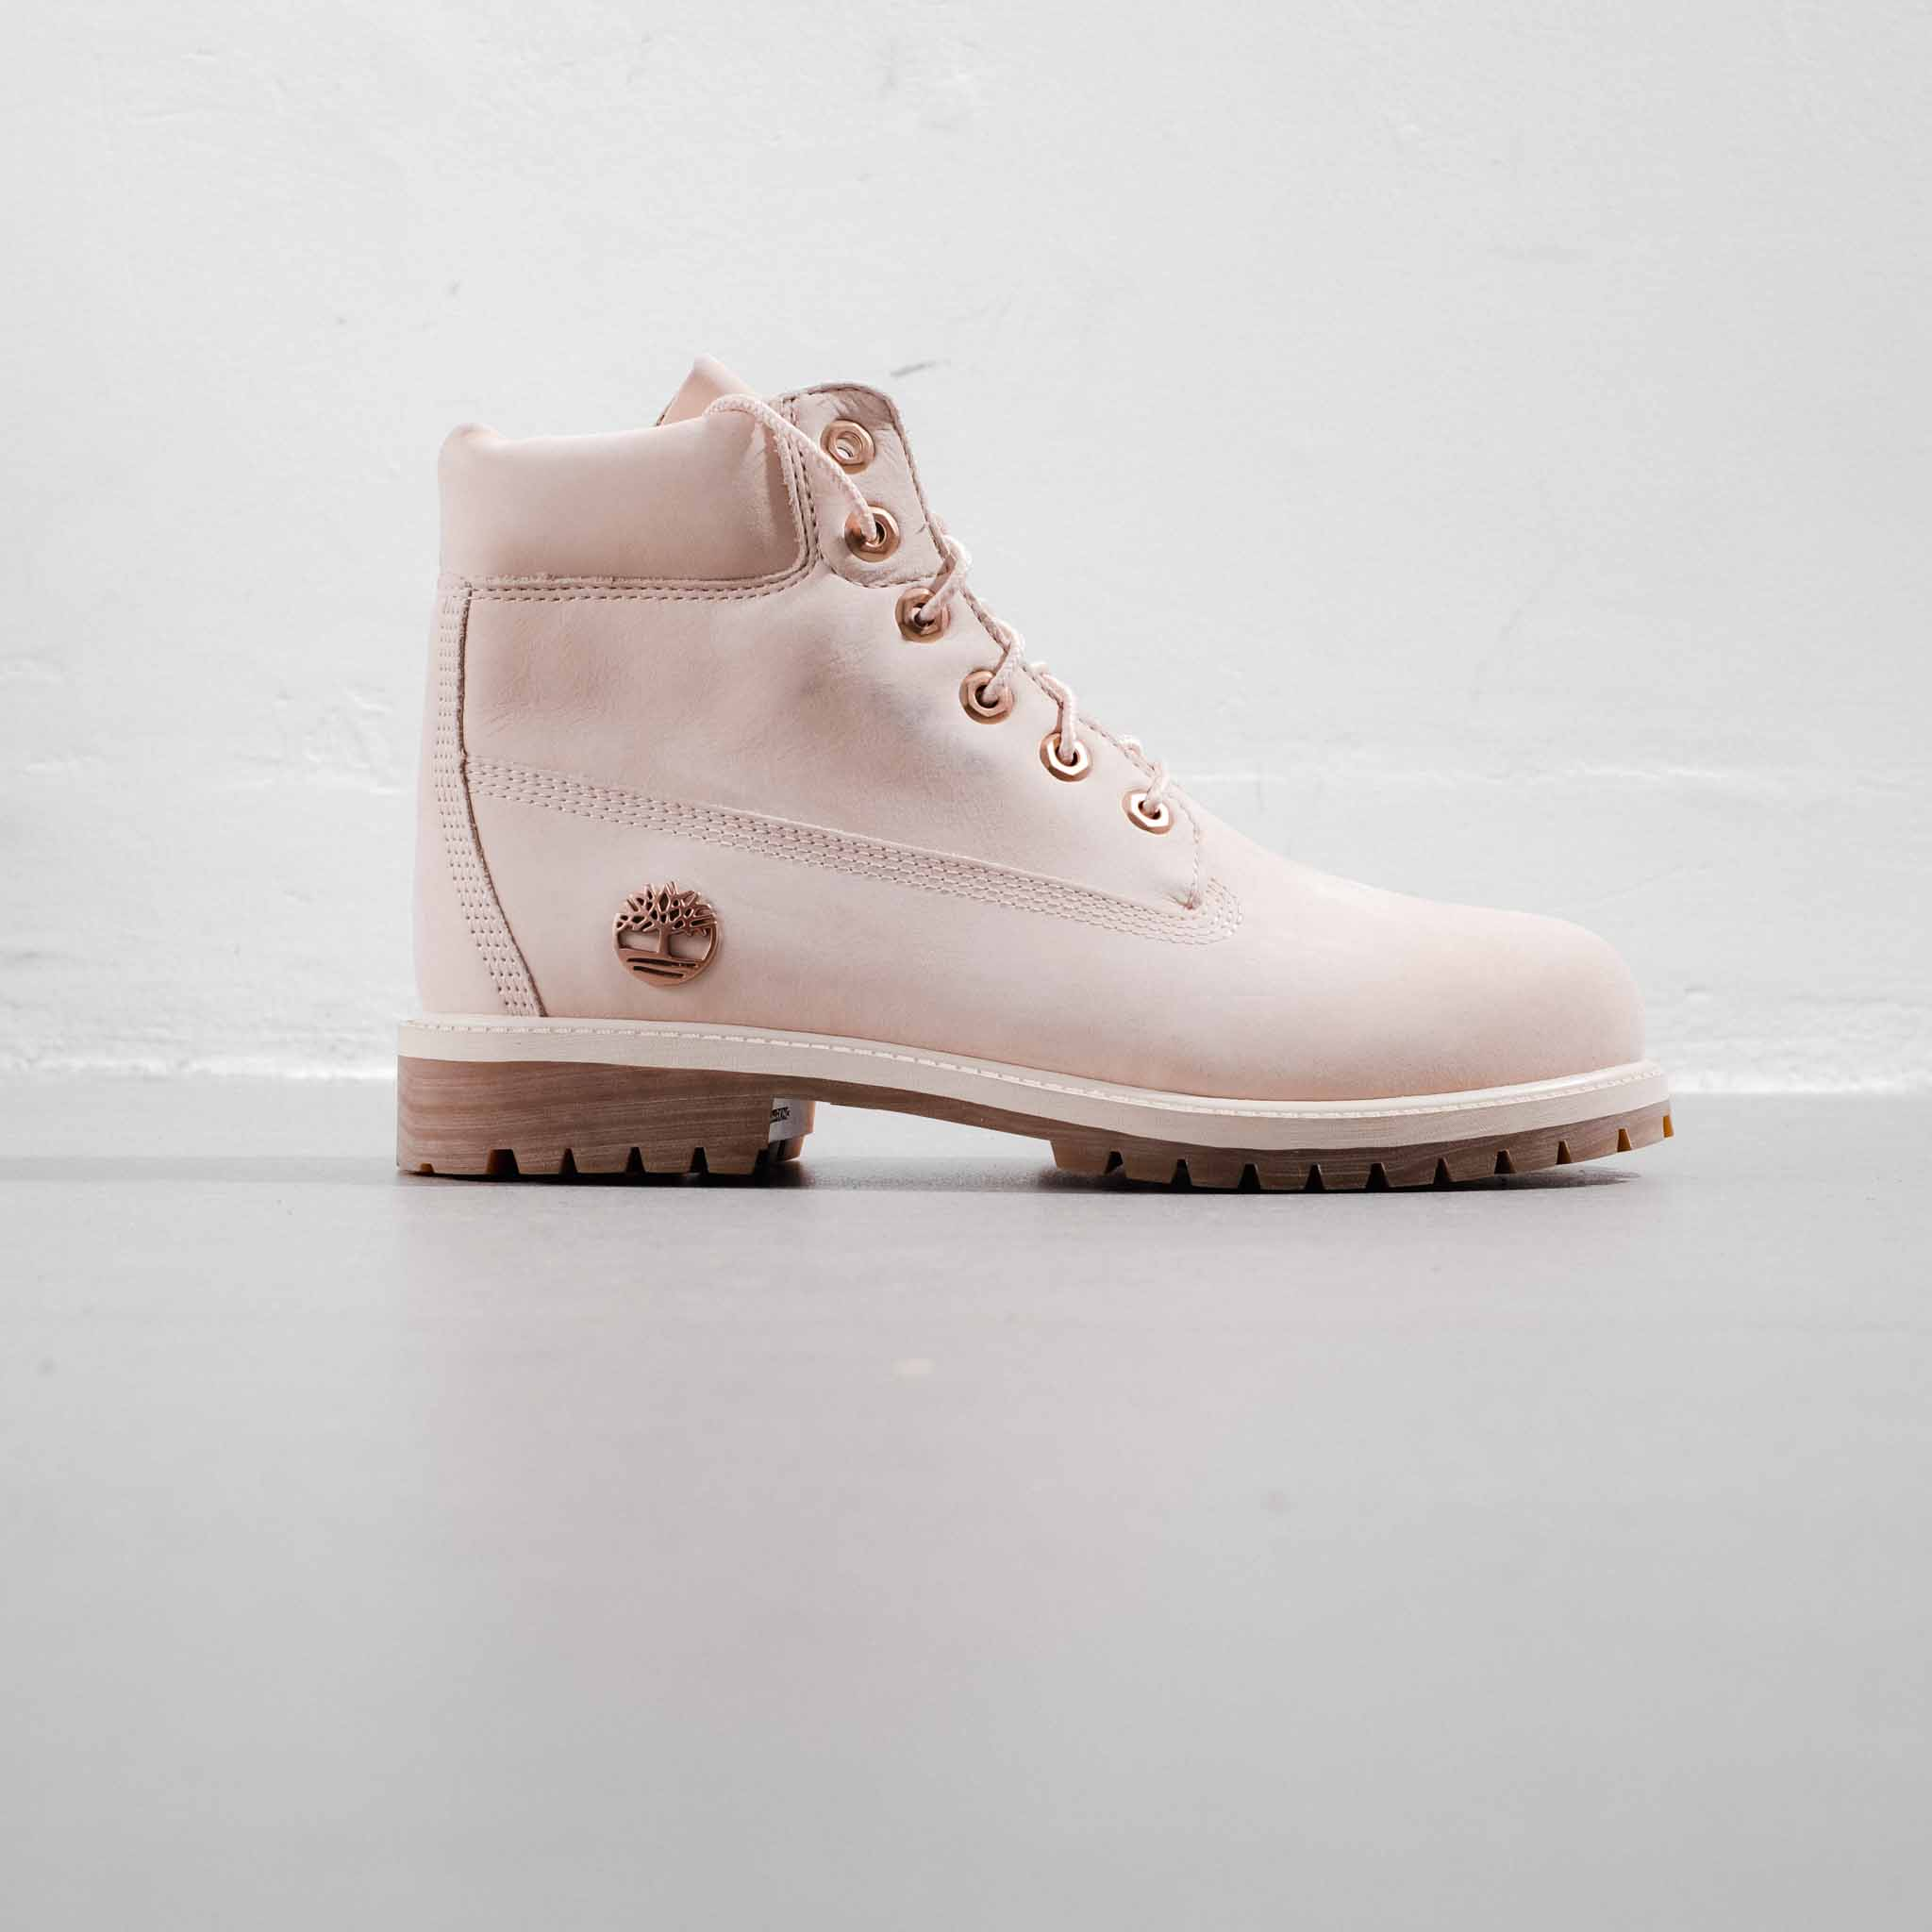 Timberland Boots Light Pink - 37,5